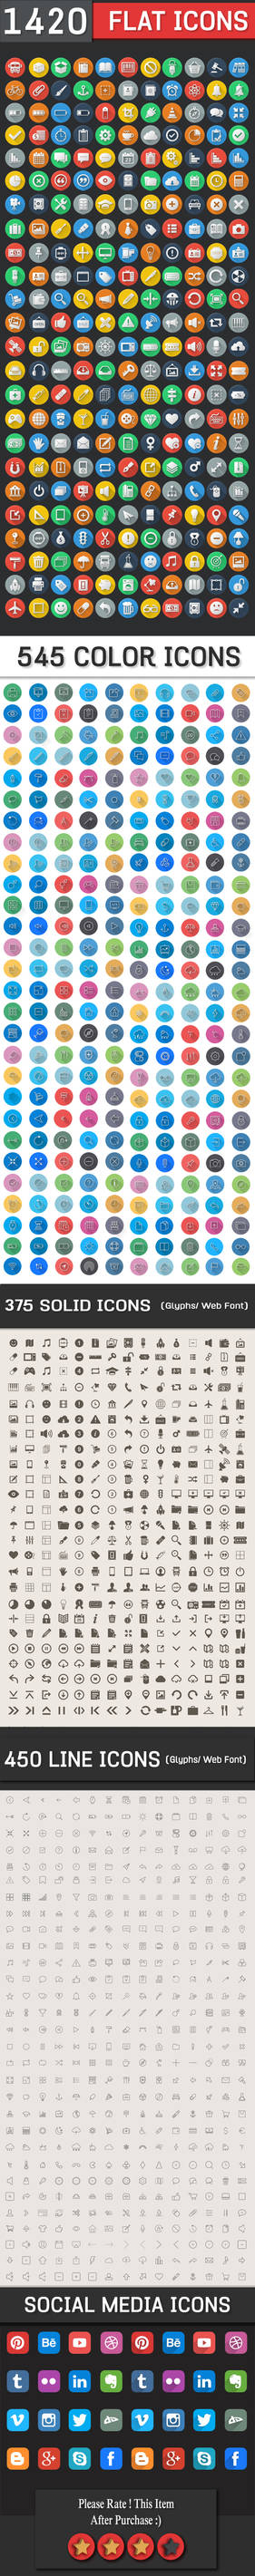 1420 Flat Icons - Colorful Icons Set